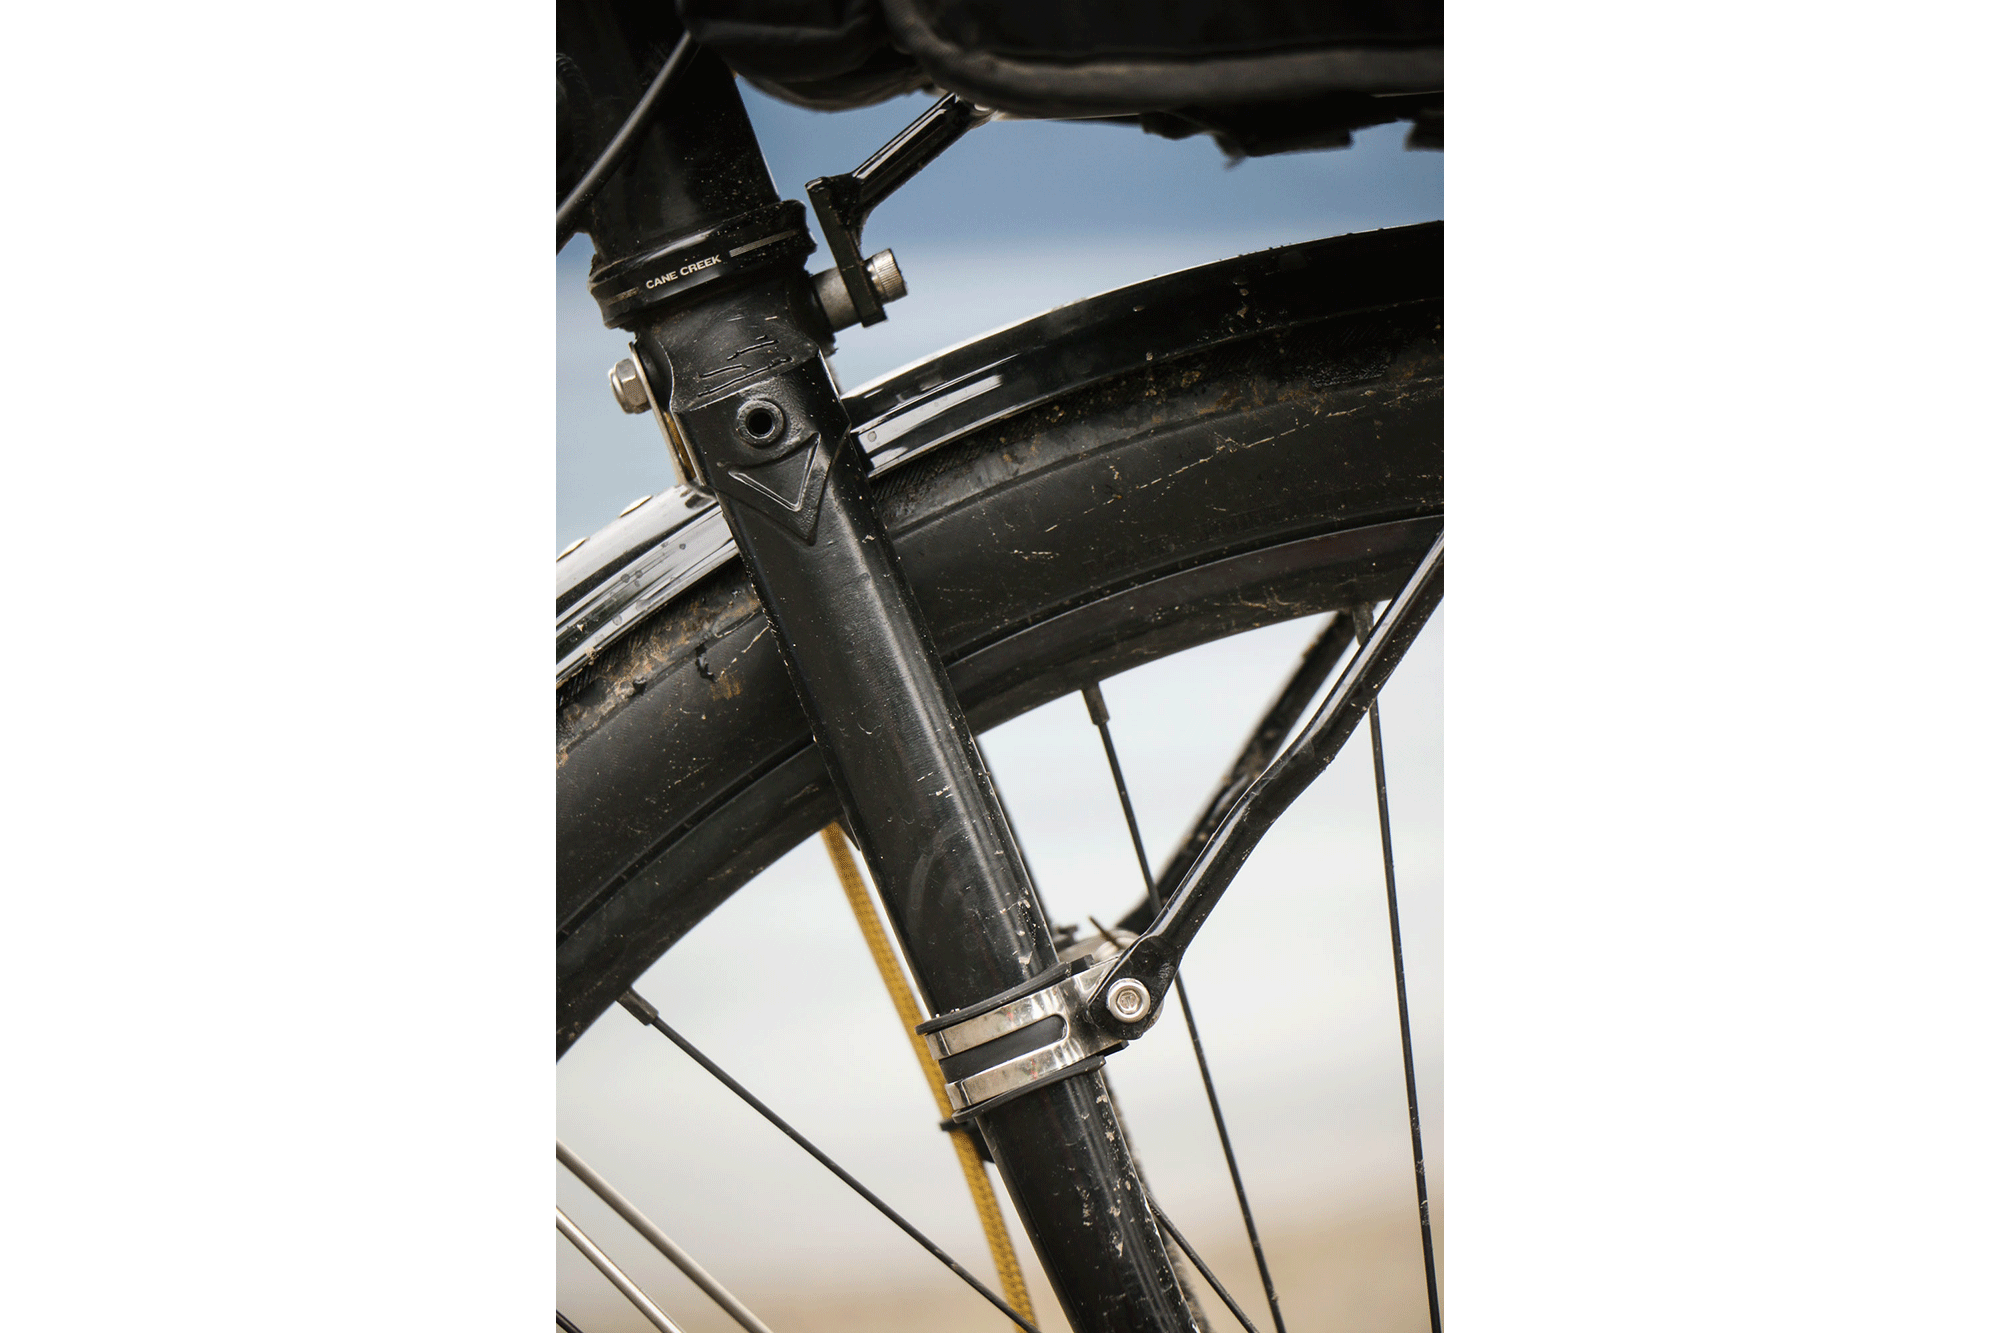 Stephanie's Blacked Out 650B Straggler – Morgan Taylor